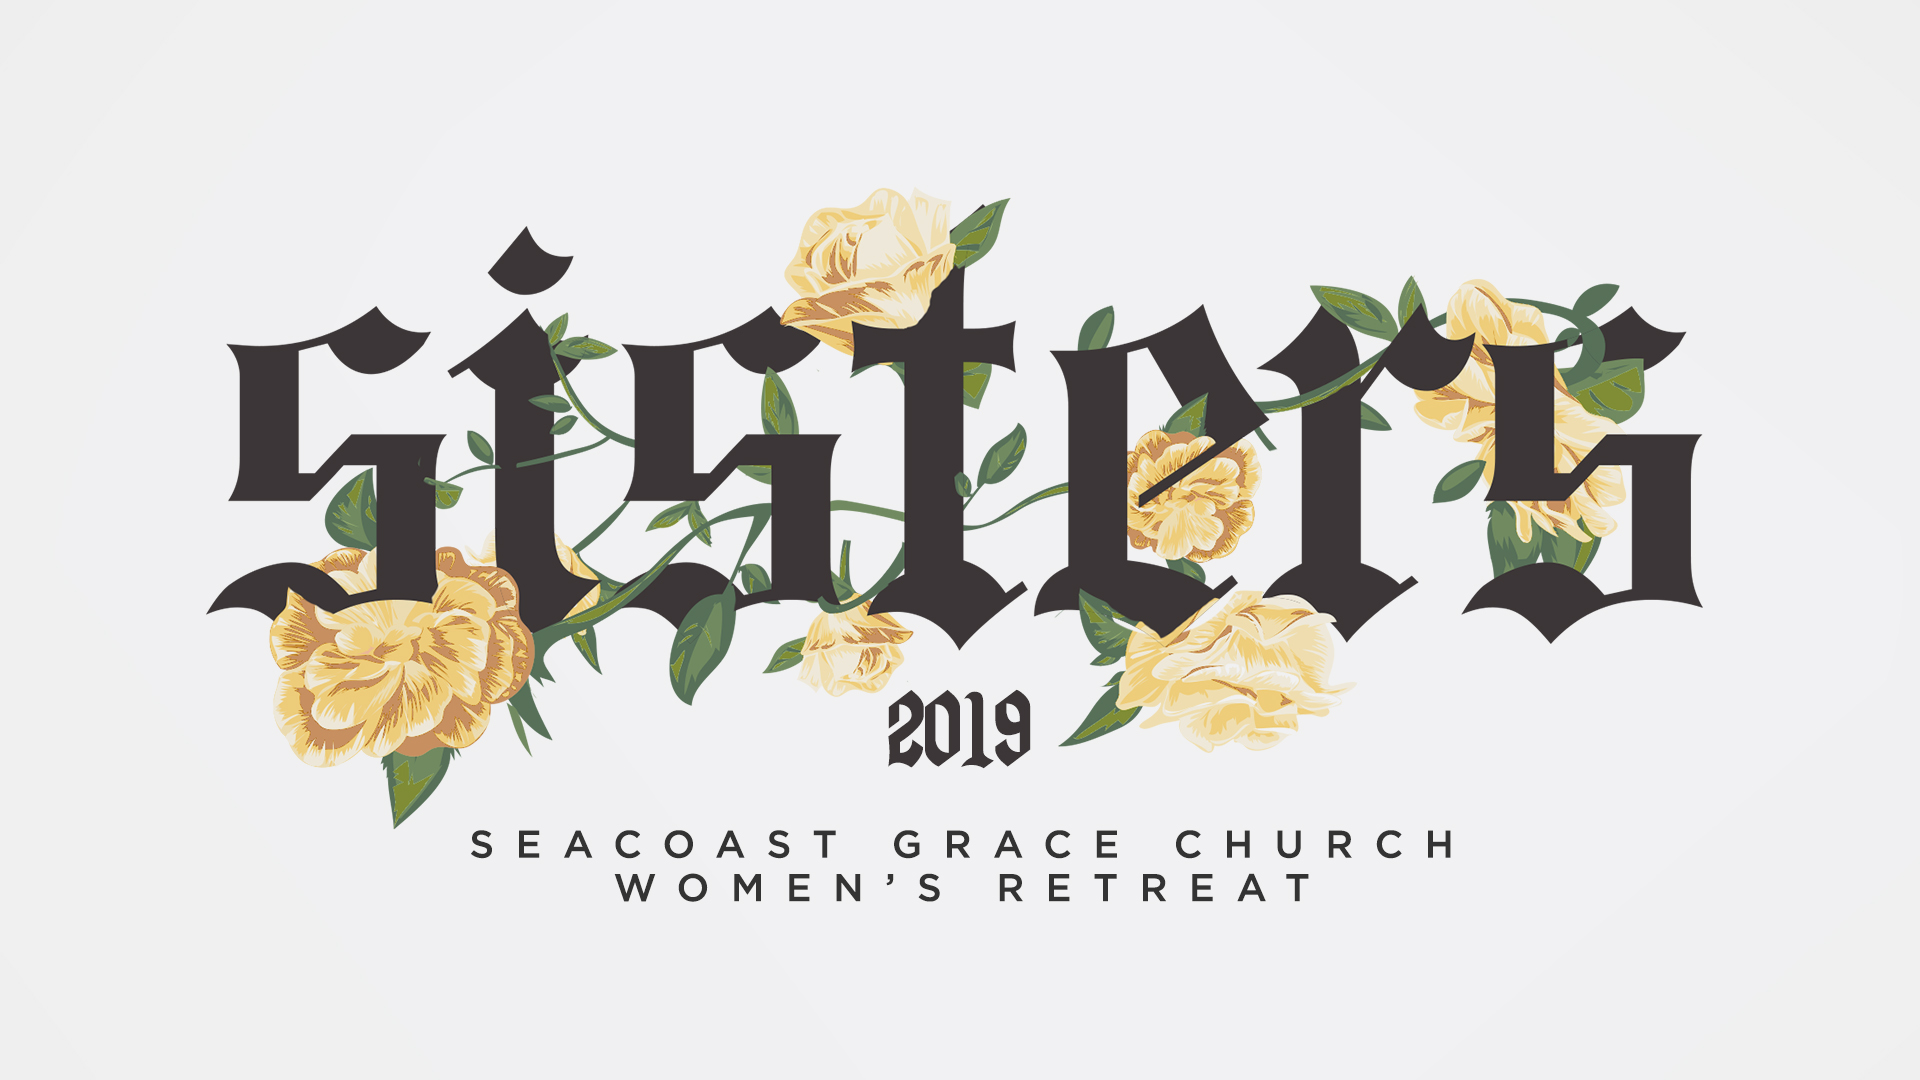 Sisters: 2019 Women's Retreat